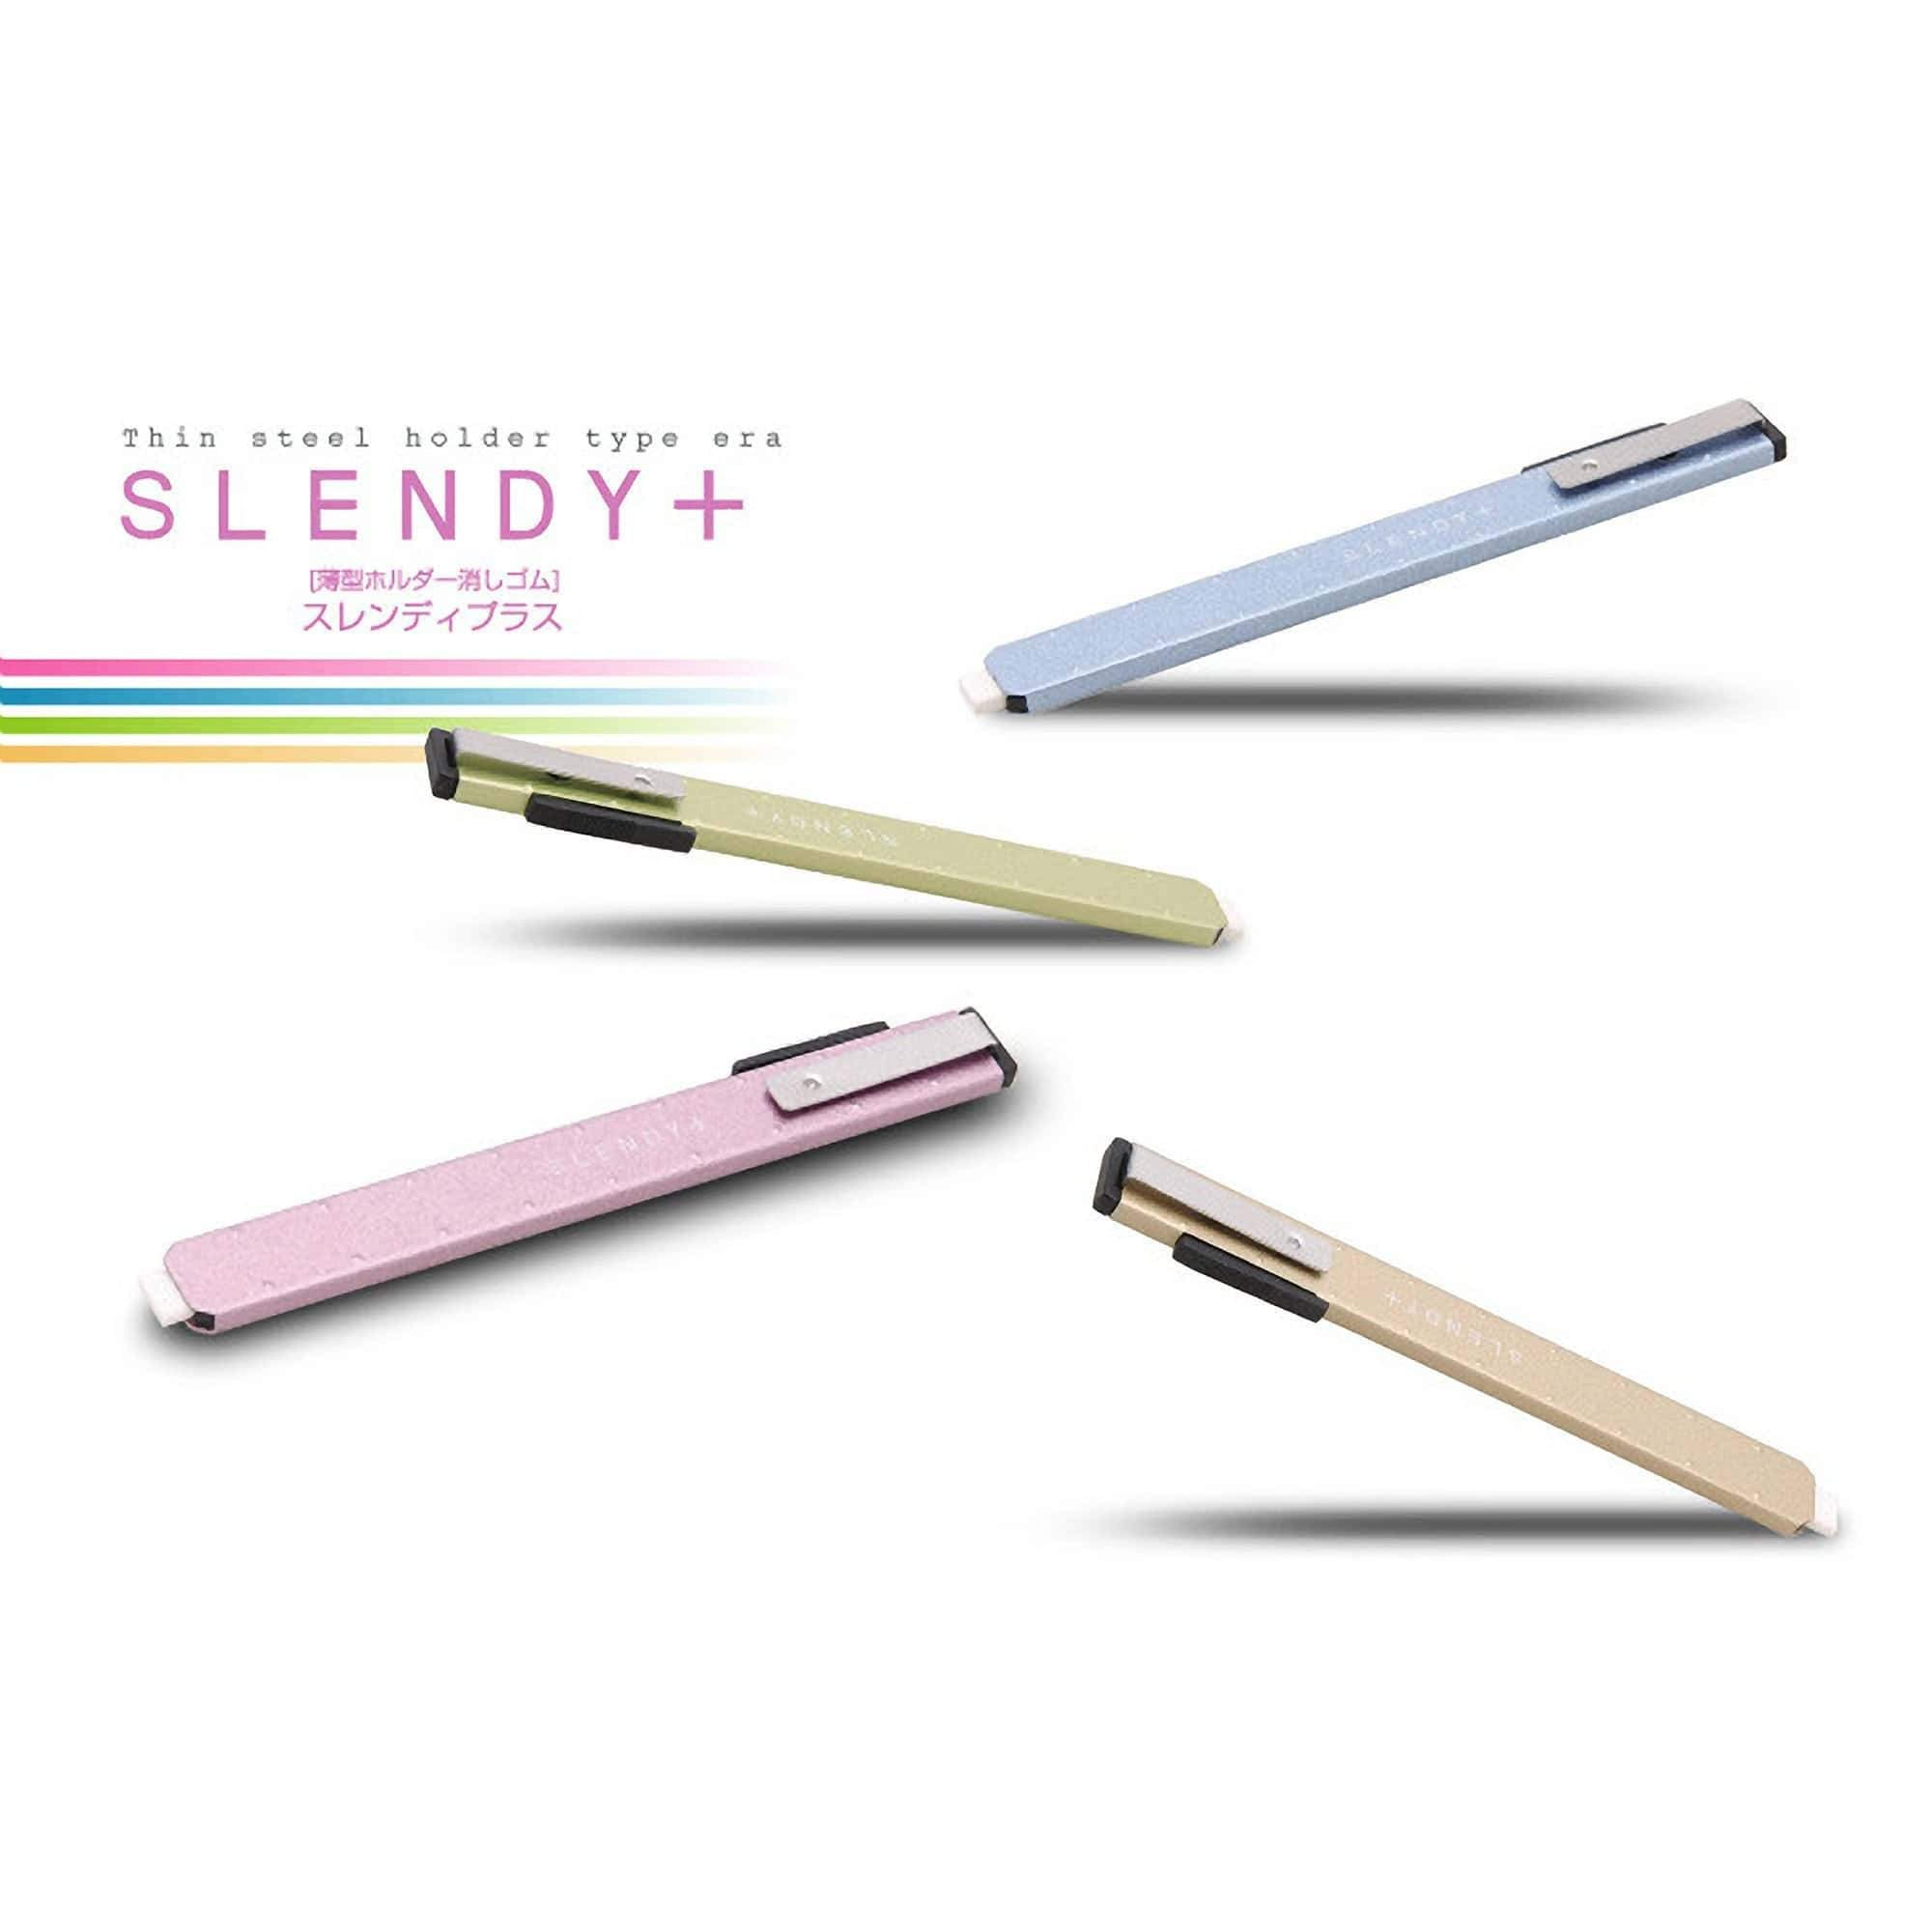 ROSE GOLD COPPER Seed Slendy Super Slim Knock Eraser - The Stationery Life!